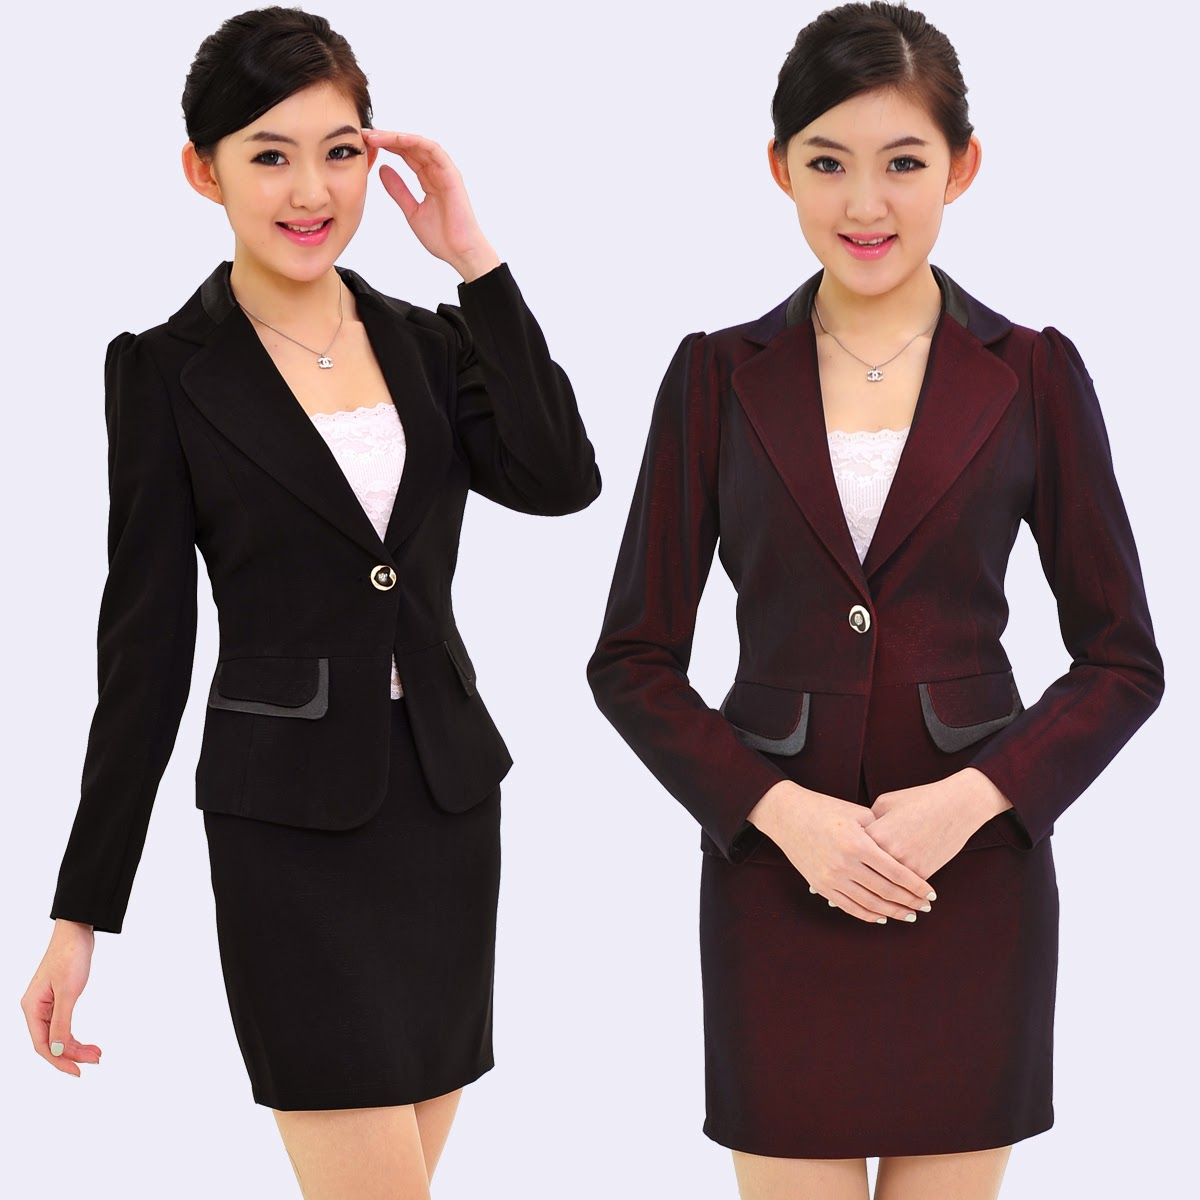 royalty design woman stylish free image in clothes vector uniform office